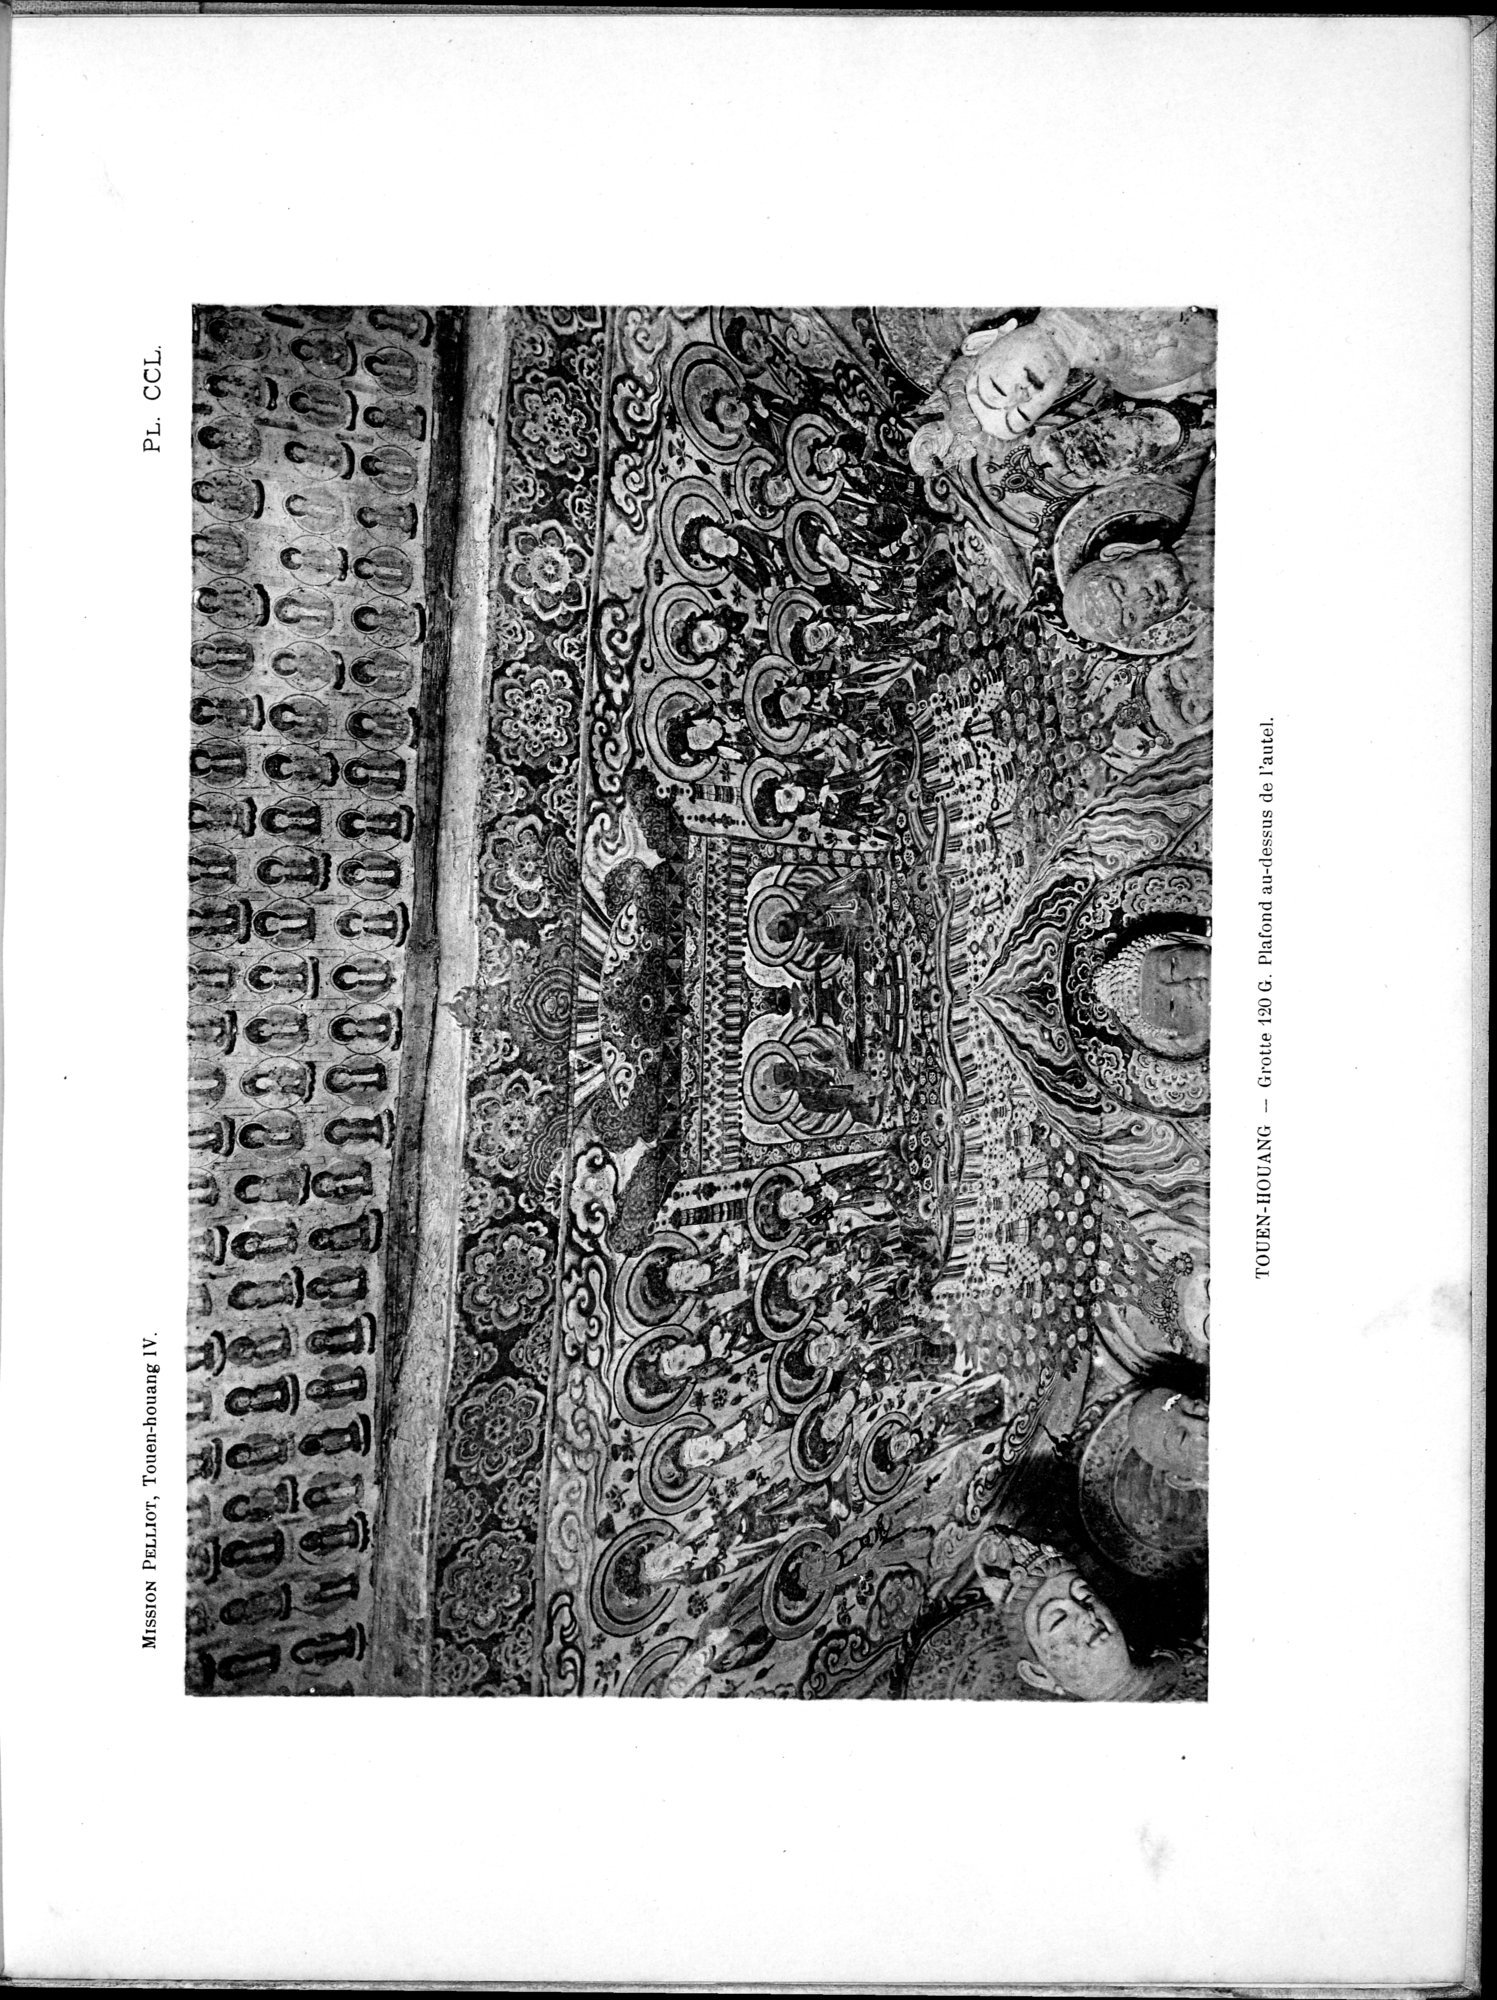 Les grottes de Touen-Houang : vol.4 / Page 125 (Grayscale High Resolution Image)